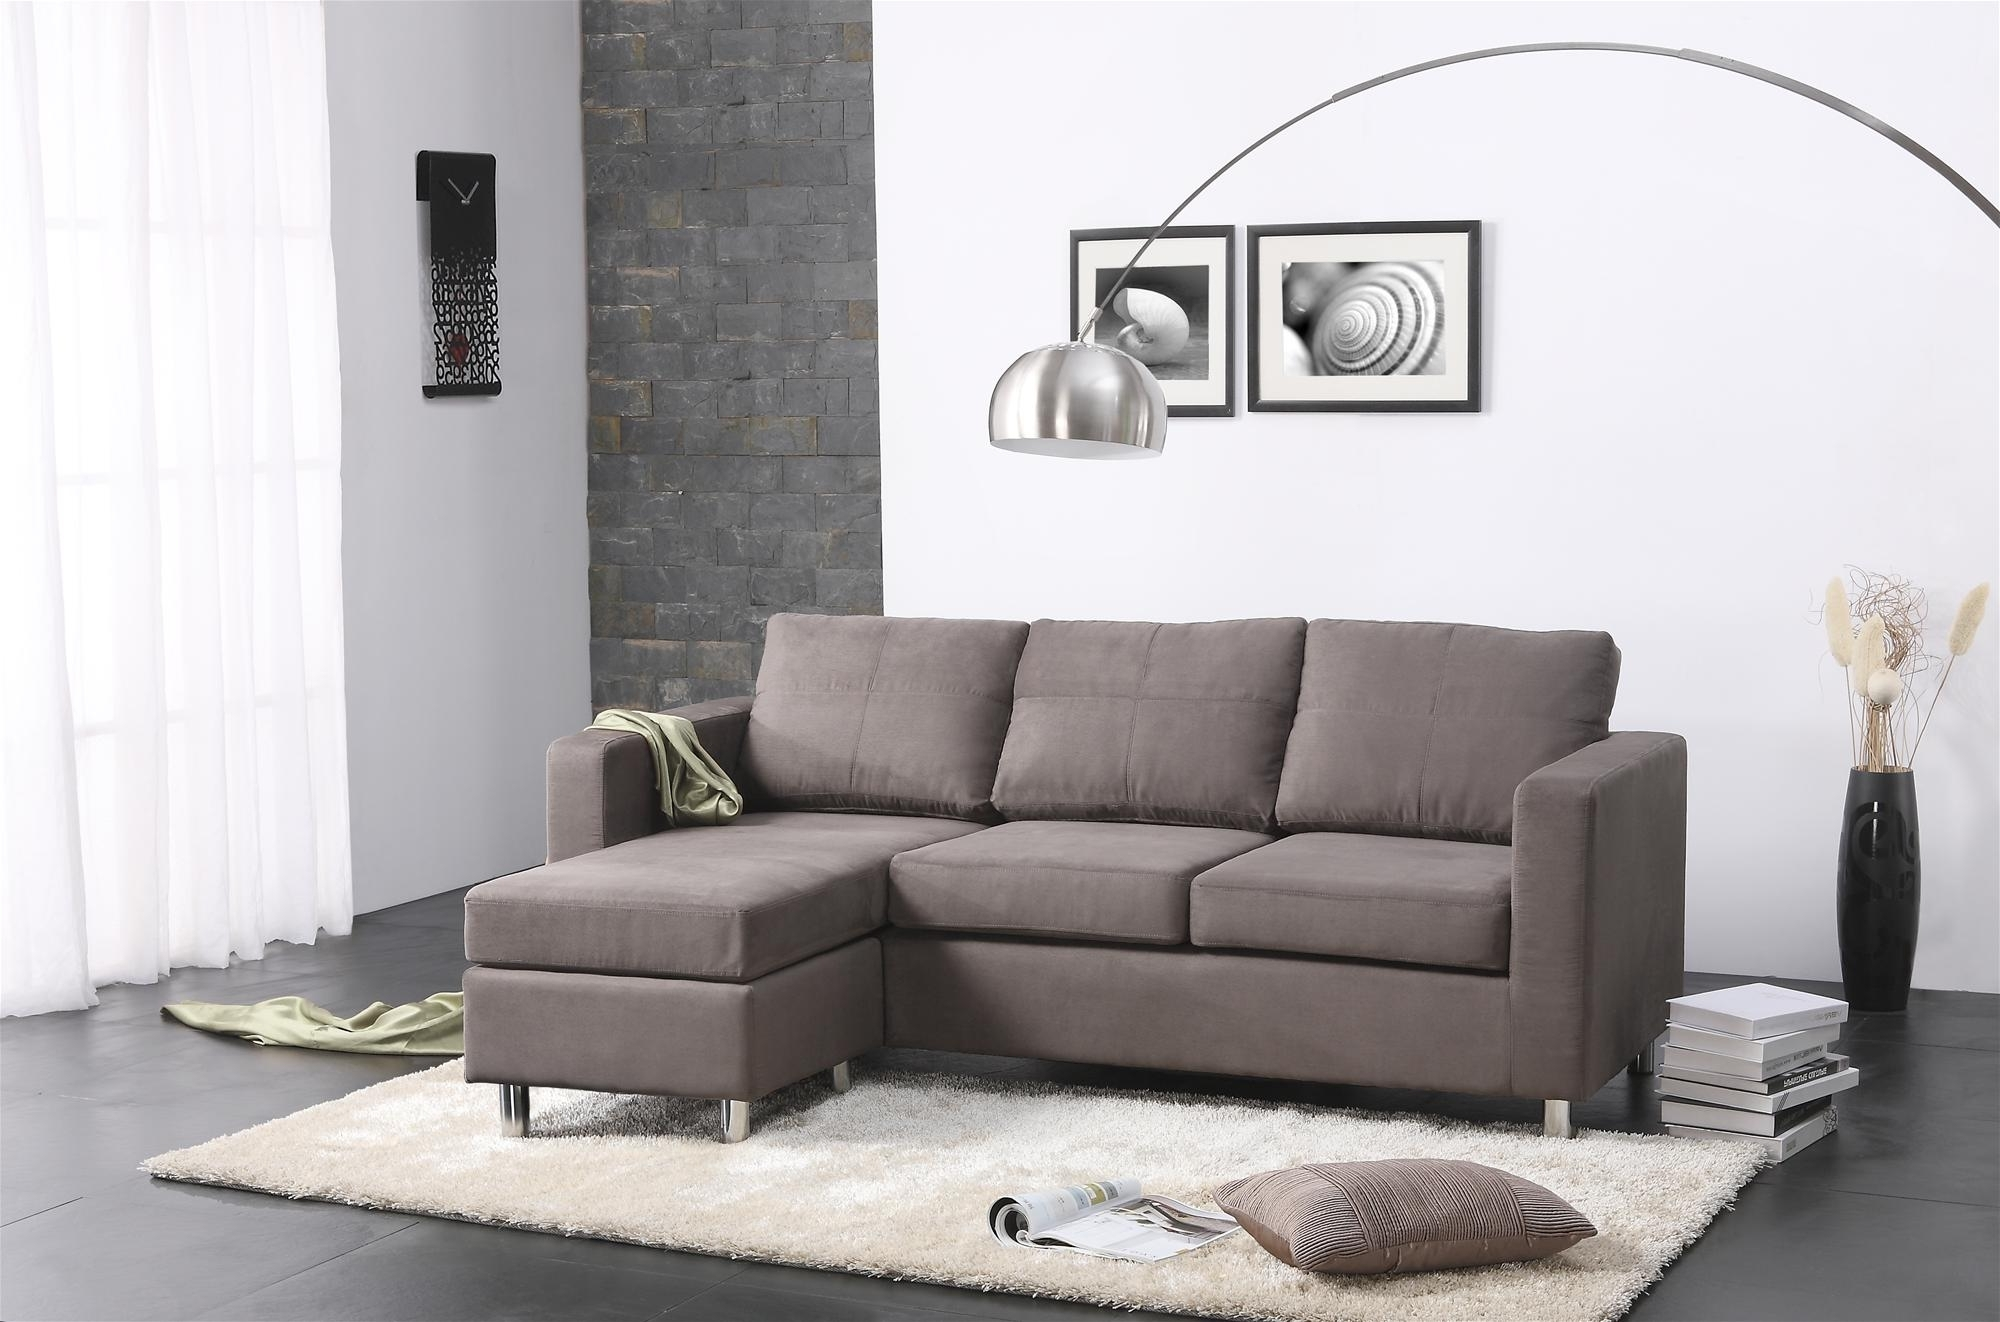 Recent Fancy Sectional Sofa For Small Spaces 46 For Contemporary Sofa Intended For Sectional Sofas For Small Rooms (View 13 of 15)